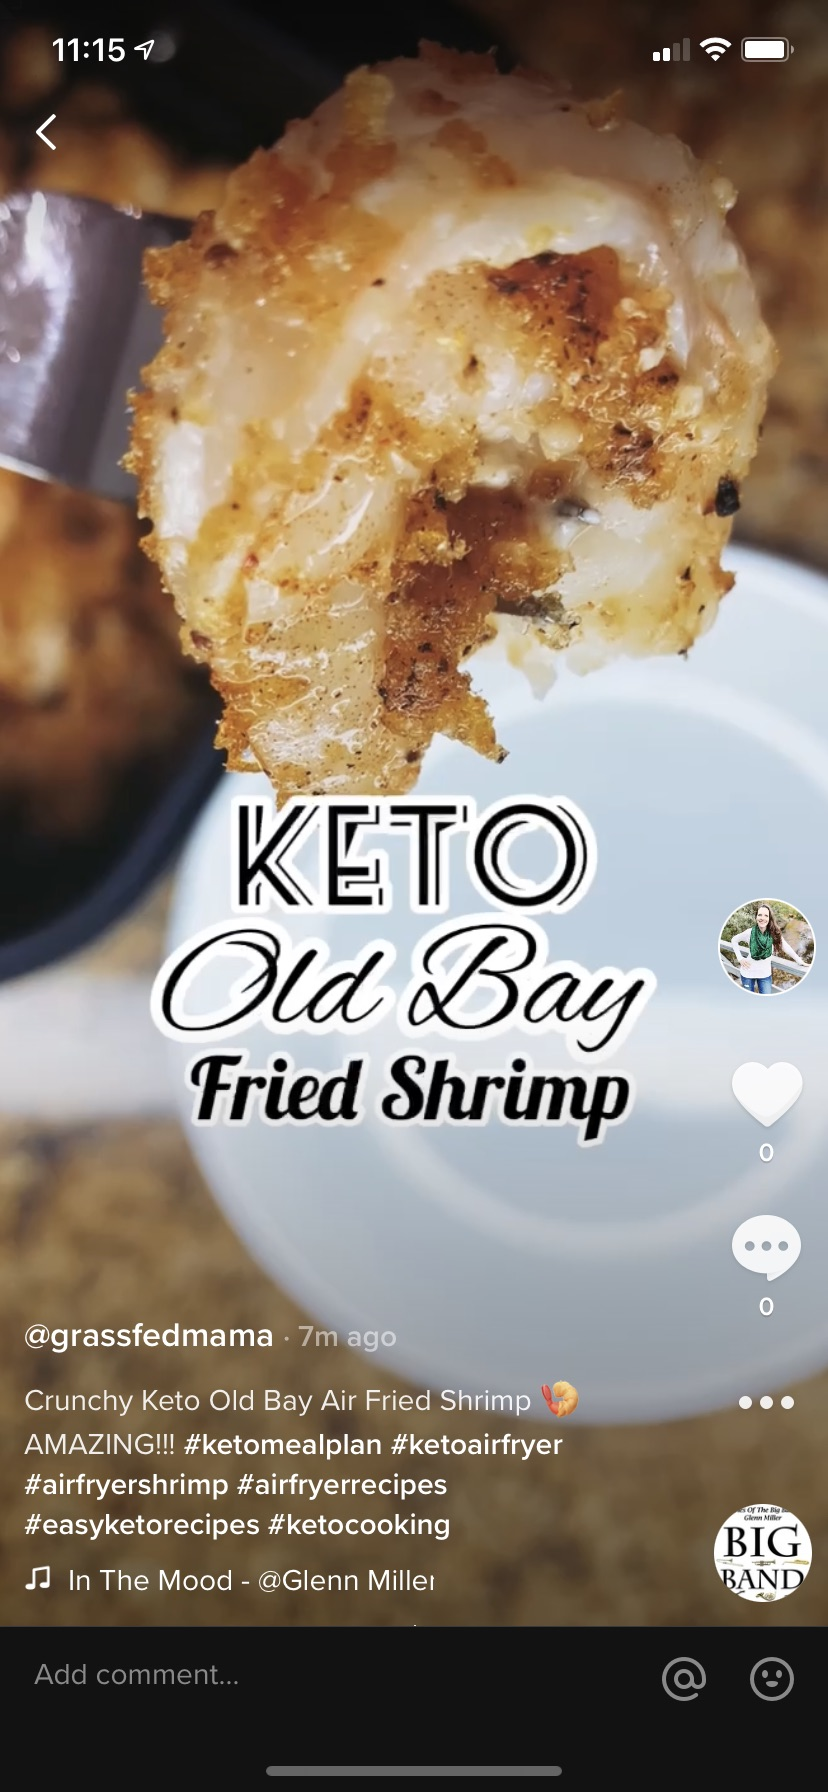 Keto Old Bay Air Fried Shrimp